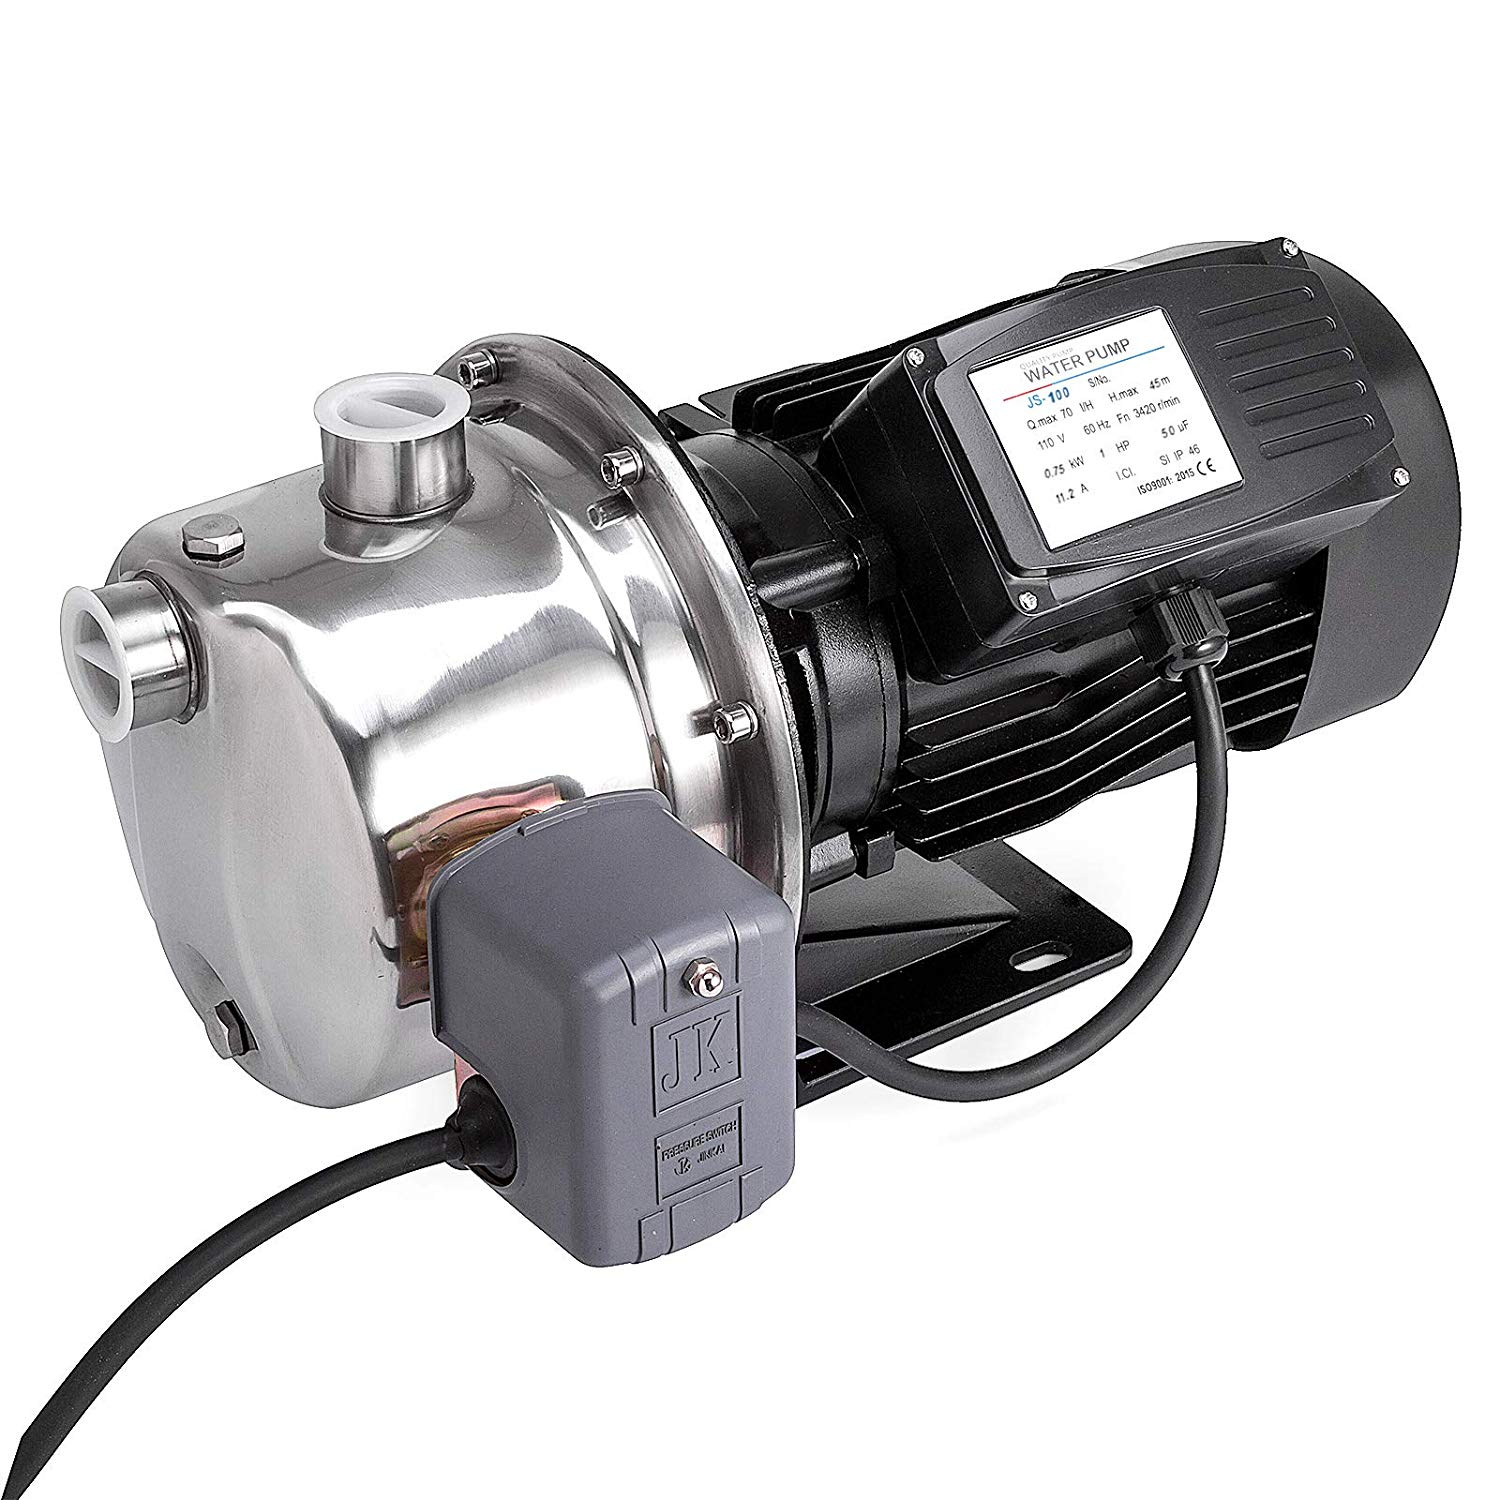 Bestequip 1 Hp Shallow Well Jet Pump 110v With Pressure